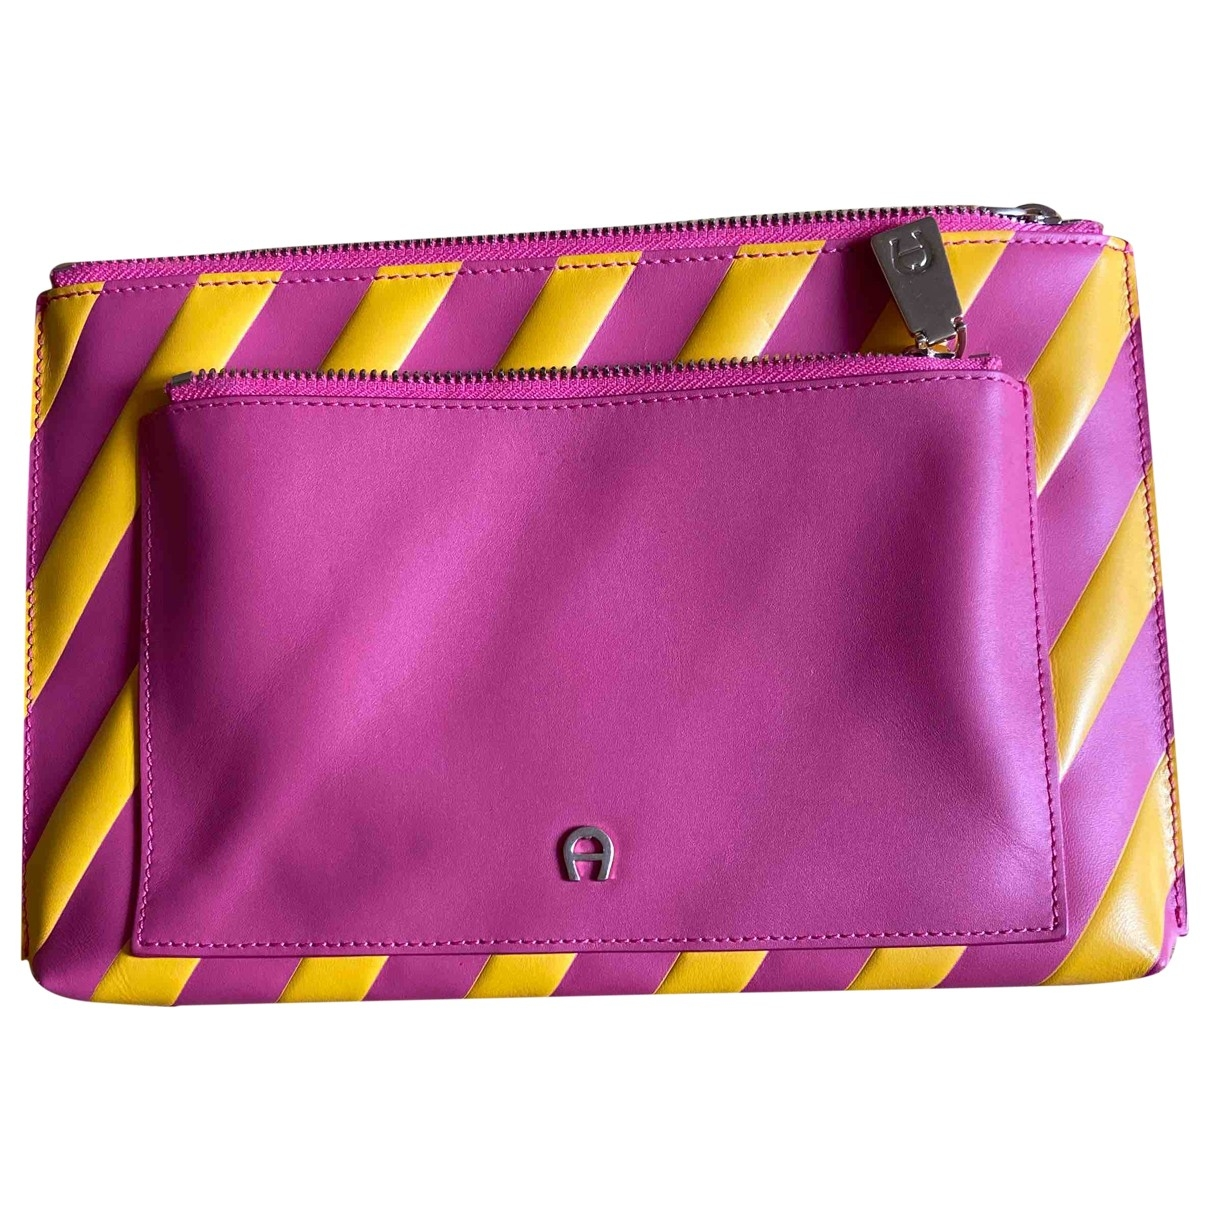 Aigner N Pink Leather Clutch bag for Women N